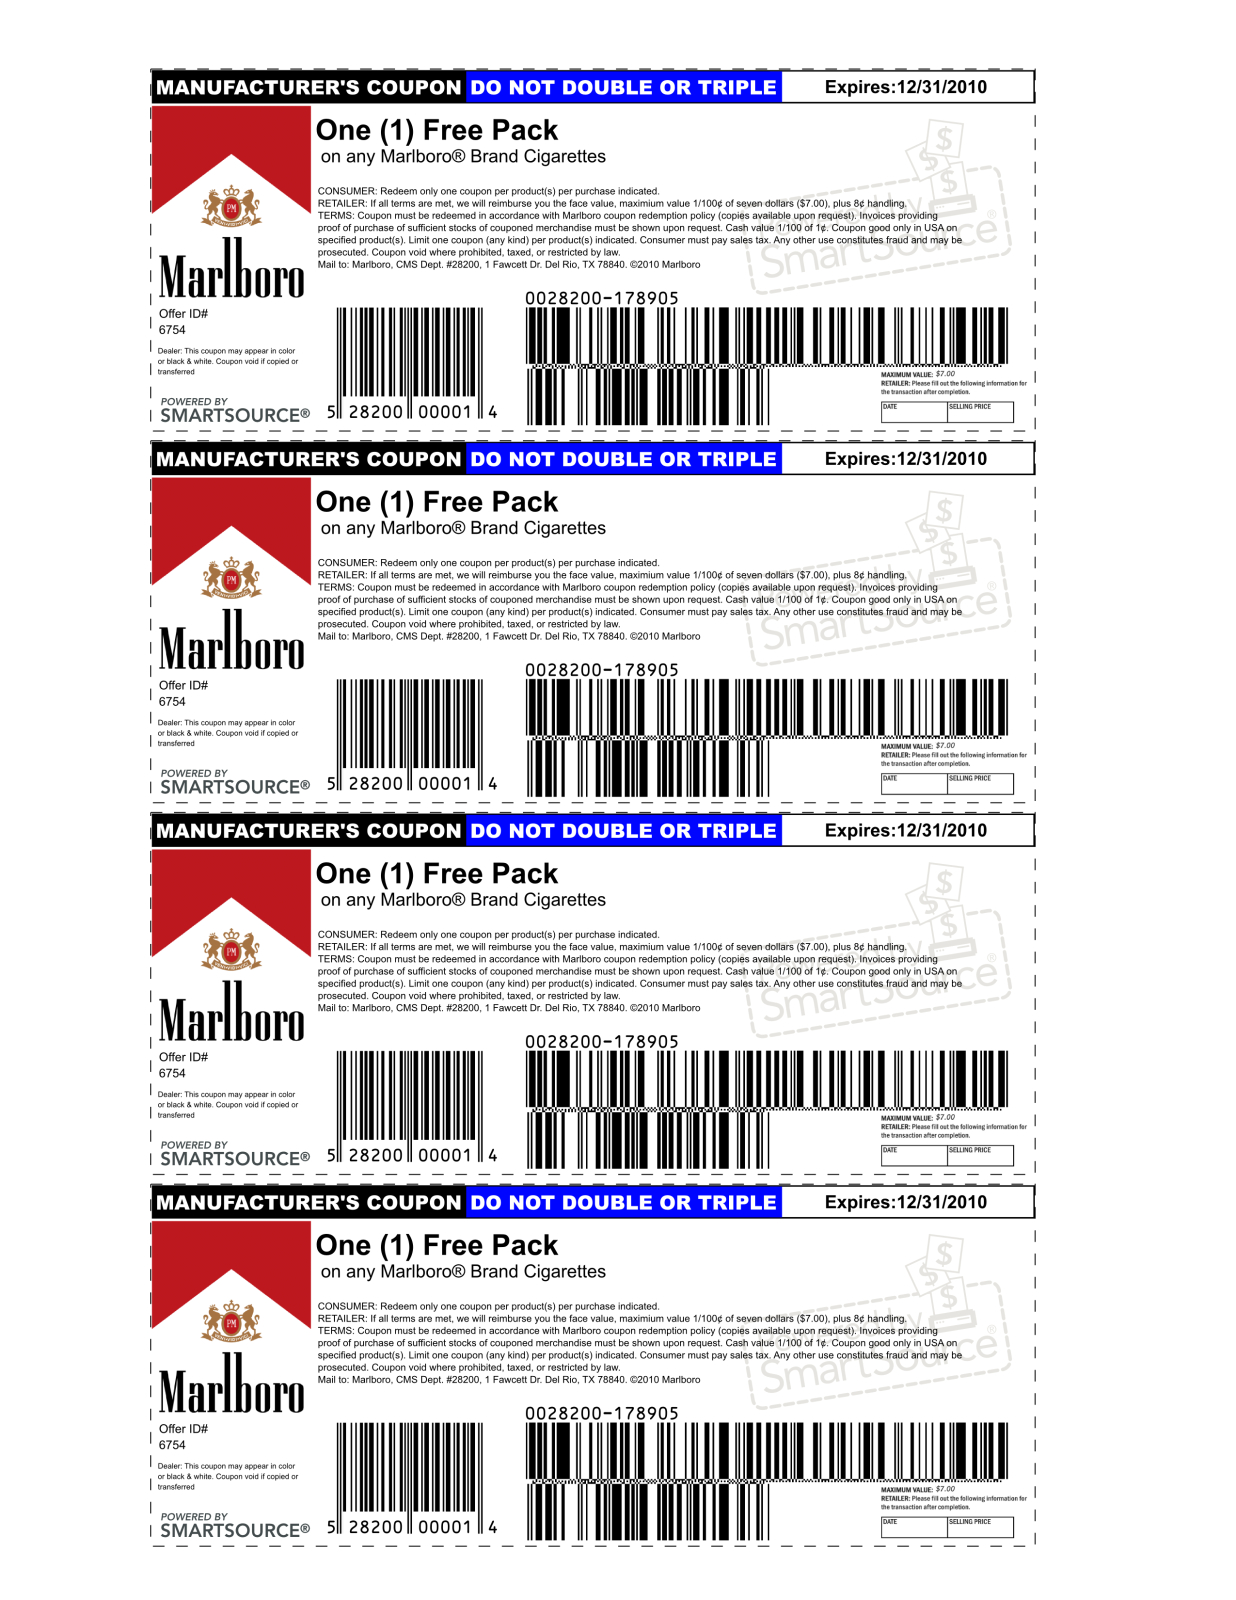 Marlboro Coupons Printable 2013   Is Using A Possibly Fake Coupon - Free Printable Coupons Without Coupon Printer